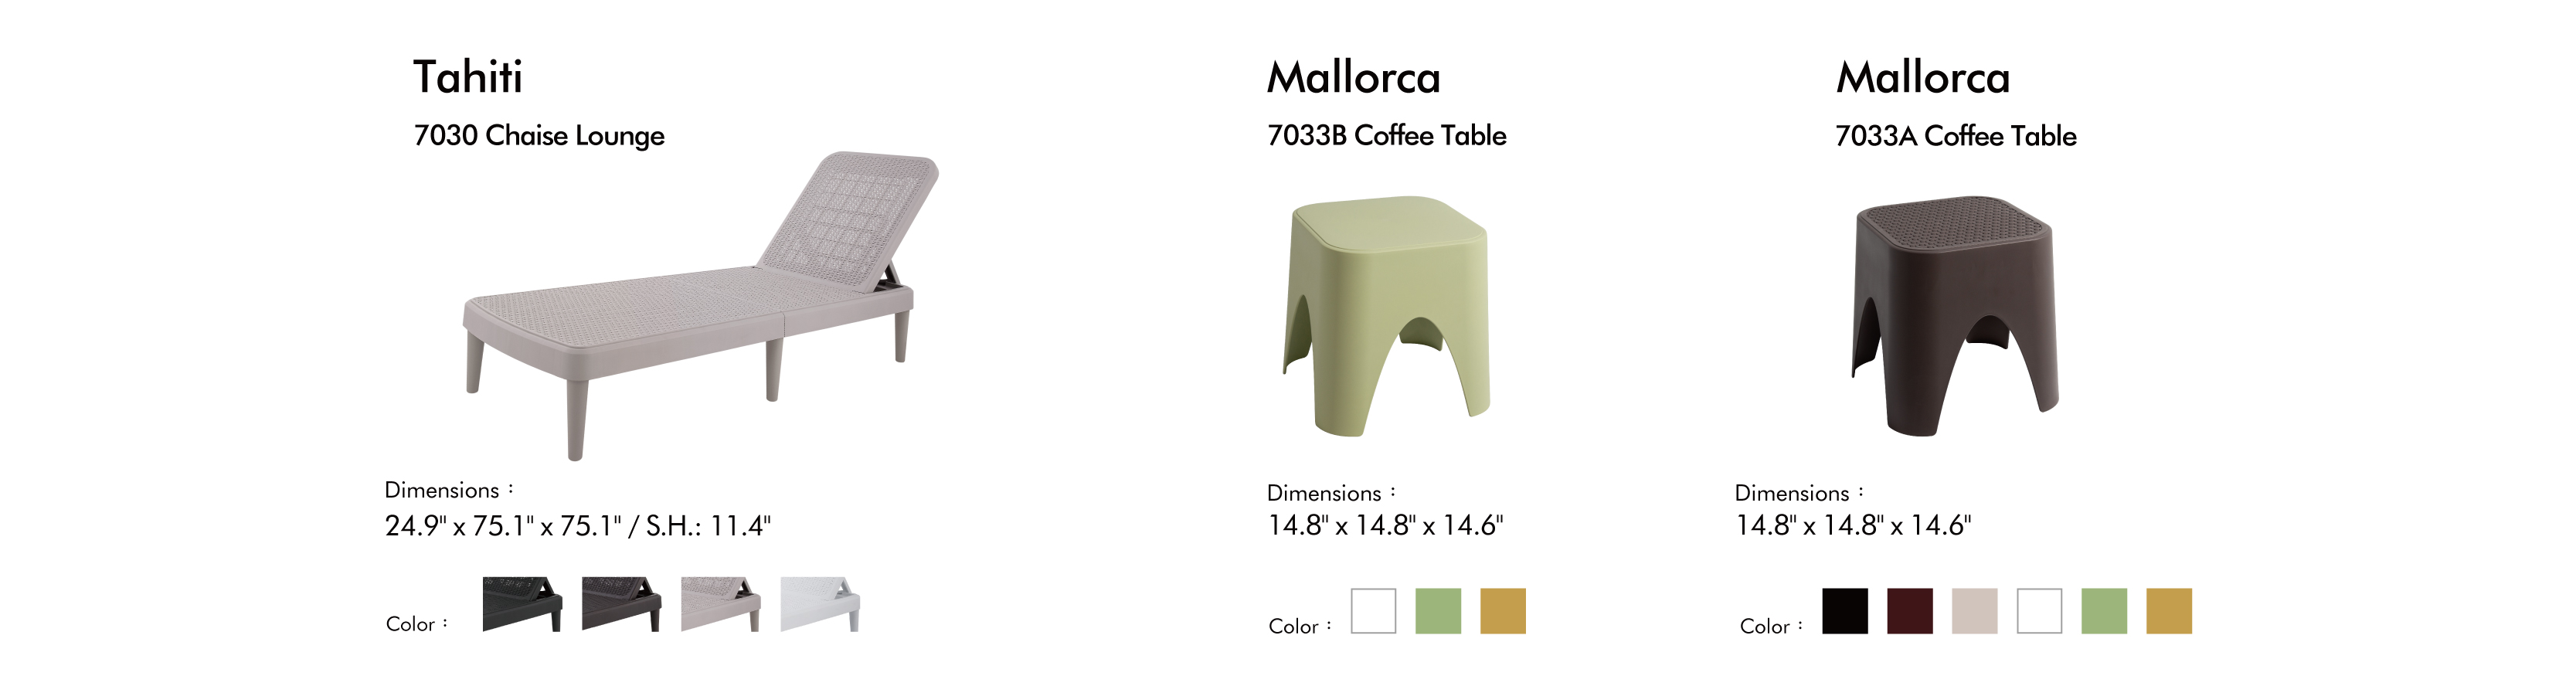 Sizes and colors of Tahiti Chaise Lounge and Mallorca Coffee Tables